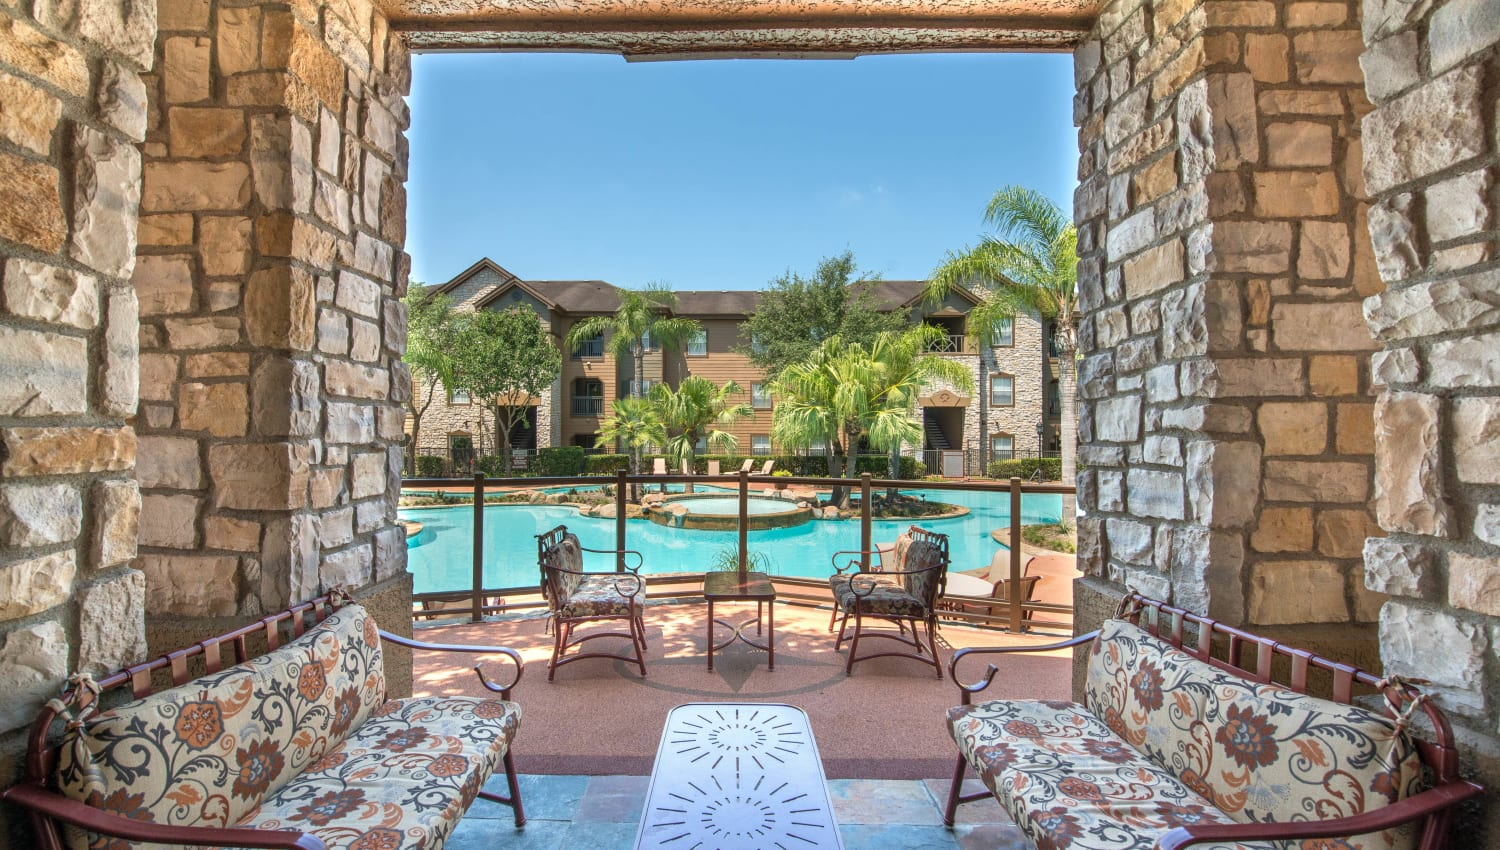 Terrific view of the pool from one of the covered lounge areas at The Ranch at Shadow Lake in Houston, Texas